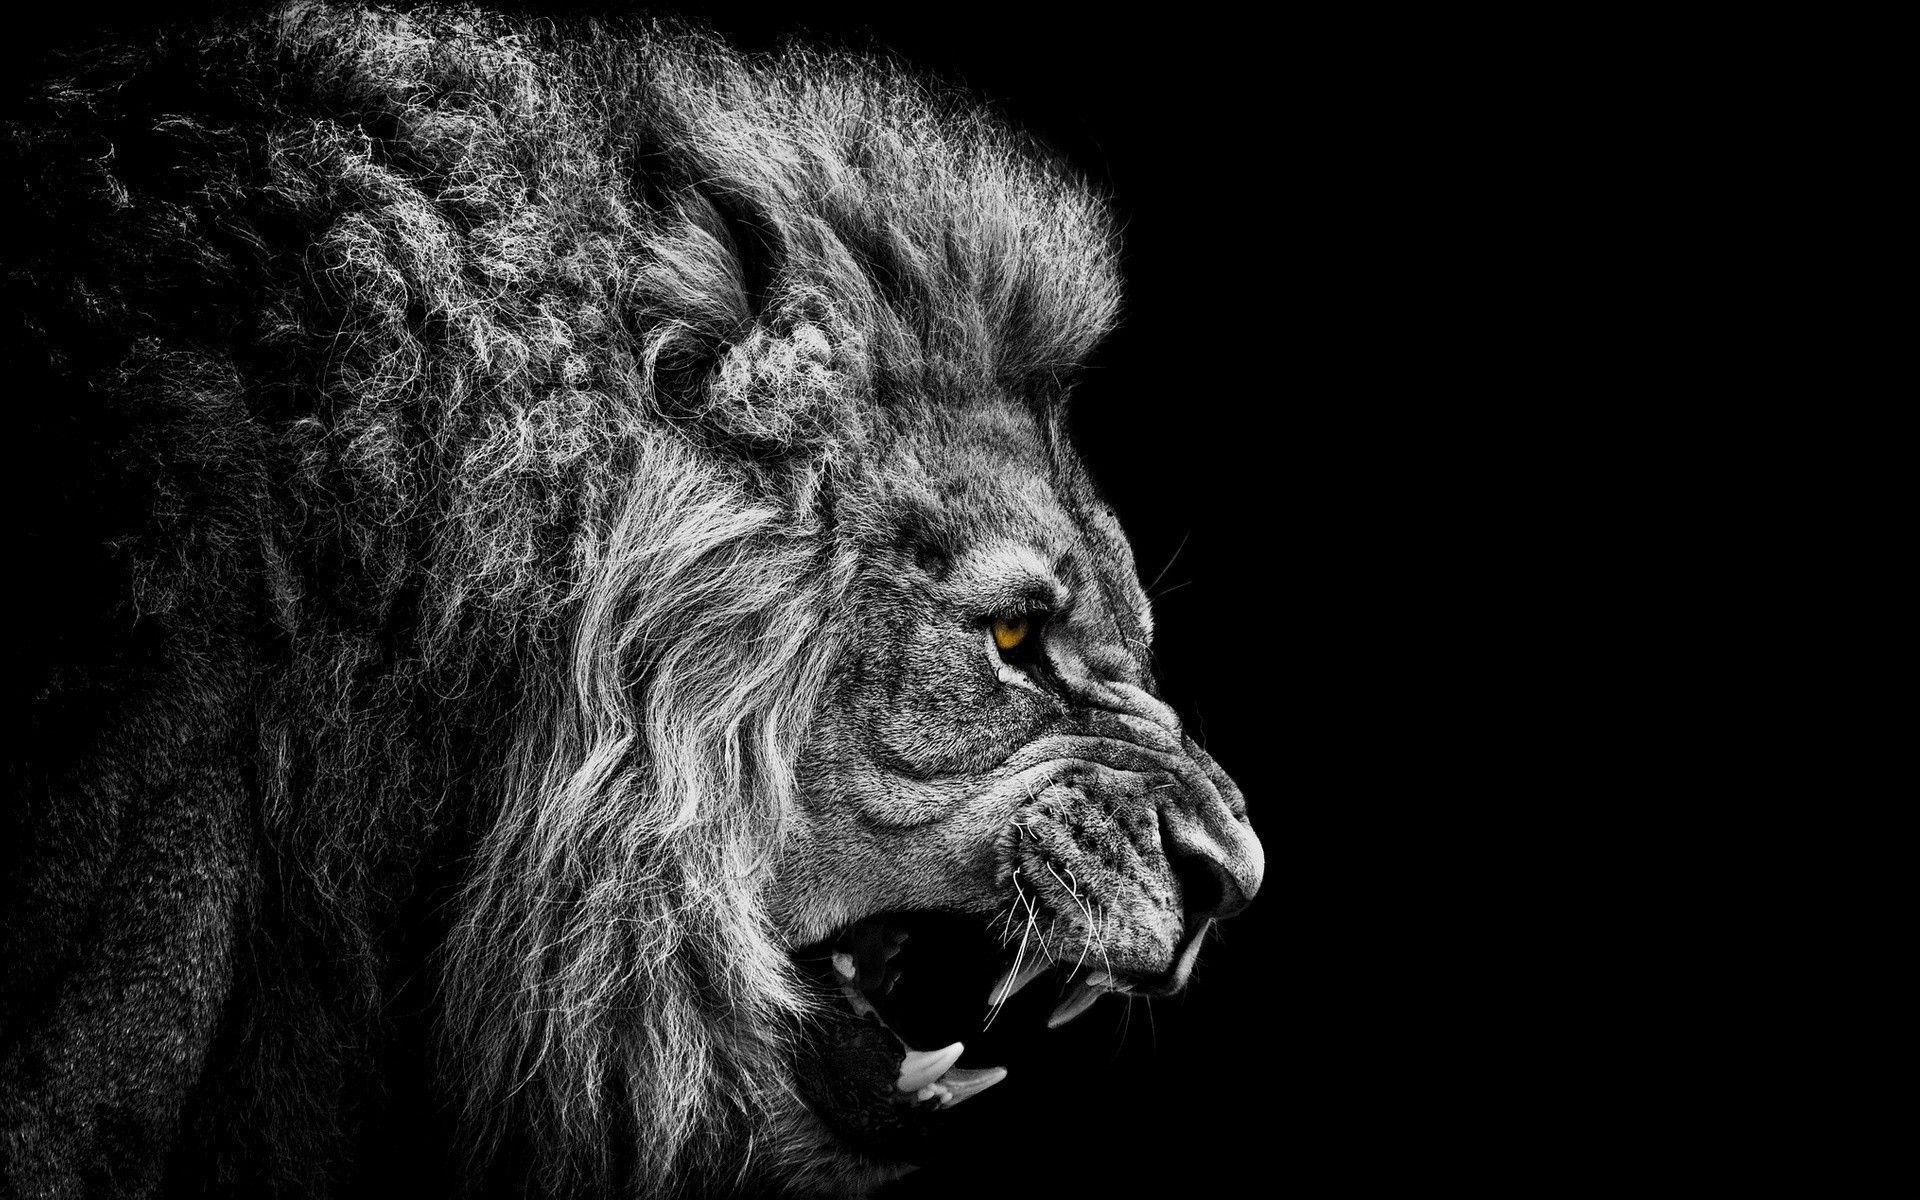 Epic Lion Wallpapers Top Free Epic Lion Backgrounds Wallpaperaccess